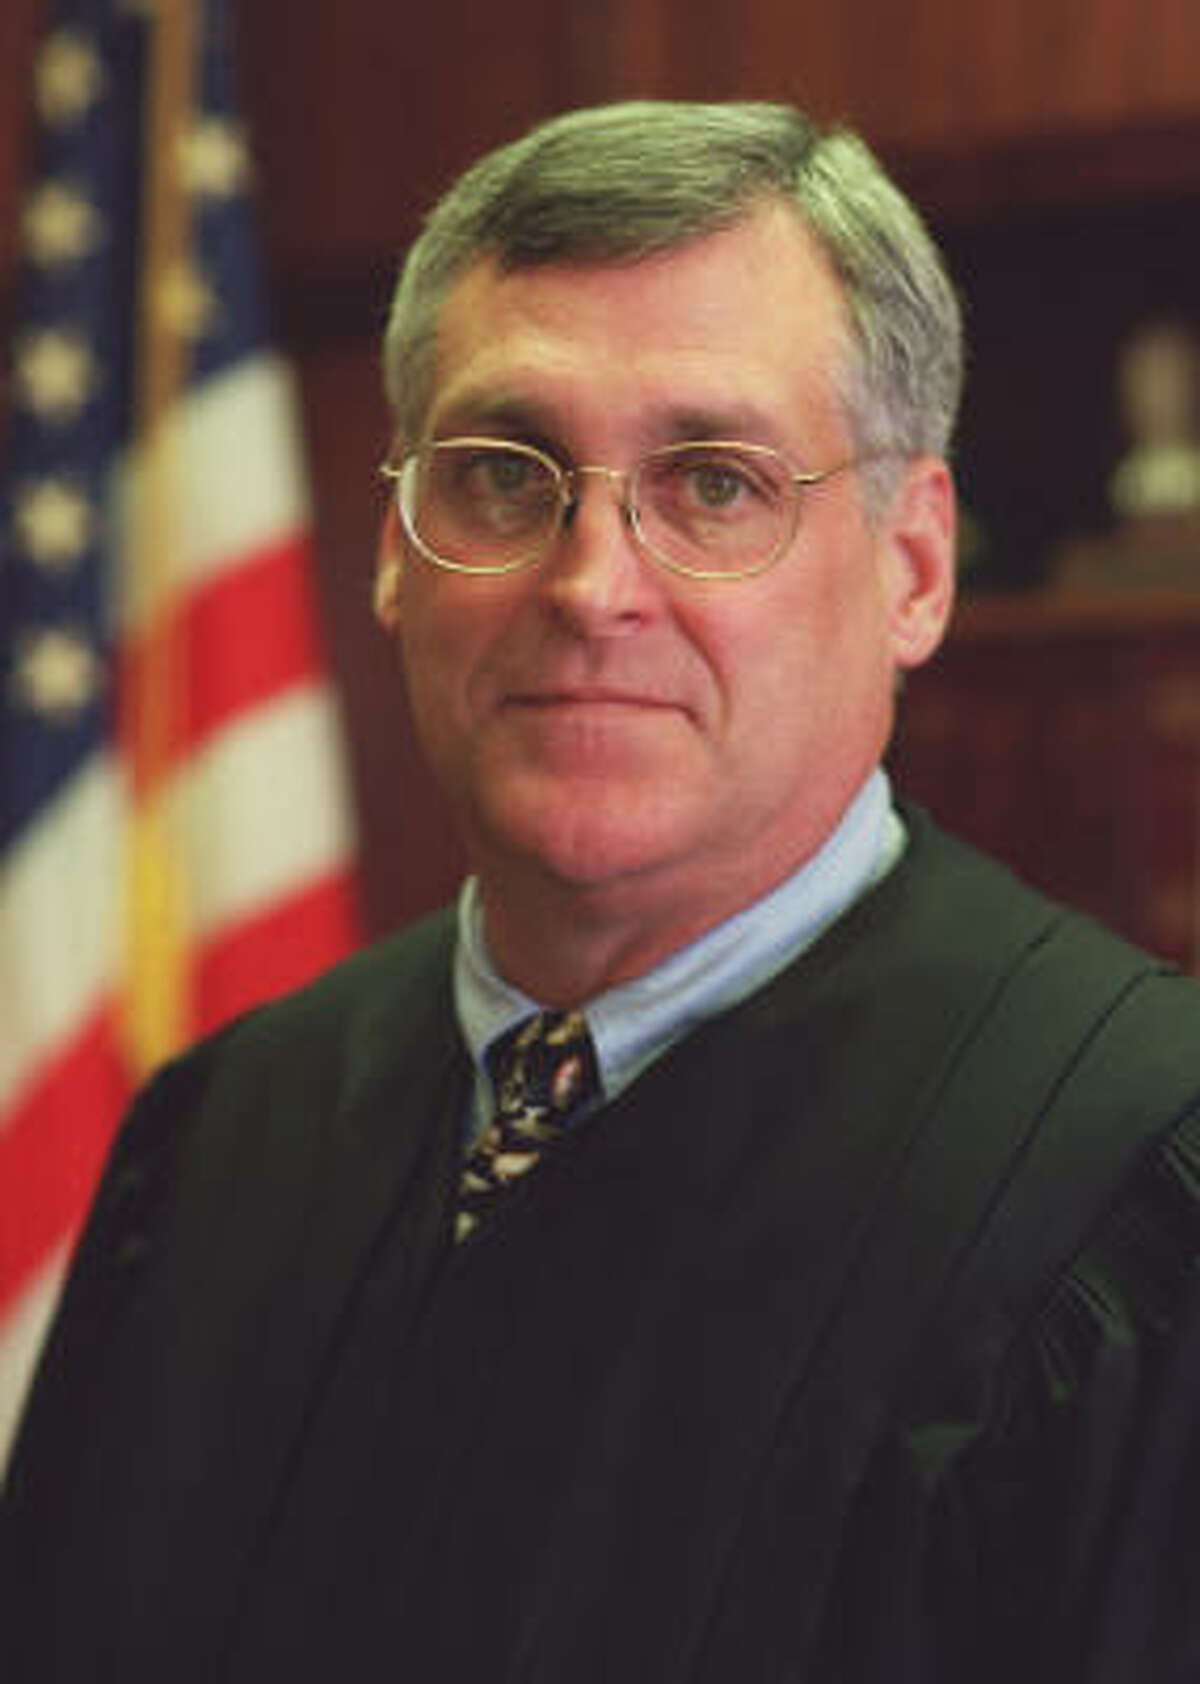 U.S. Federal District Judge Sam Kent, shown in 2001, is accused of harassing and inappropriately touching his 49-year-old case manager in his chambers in March.